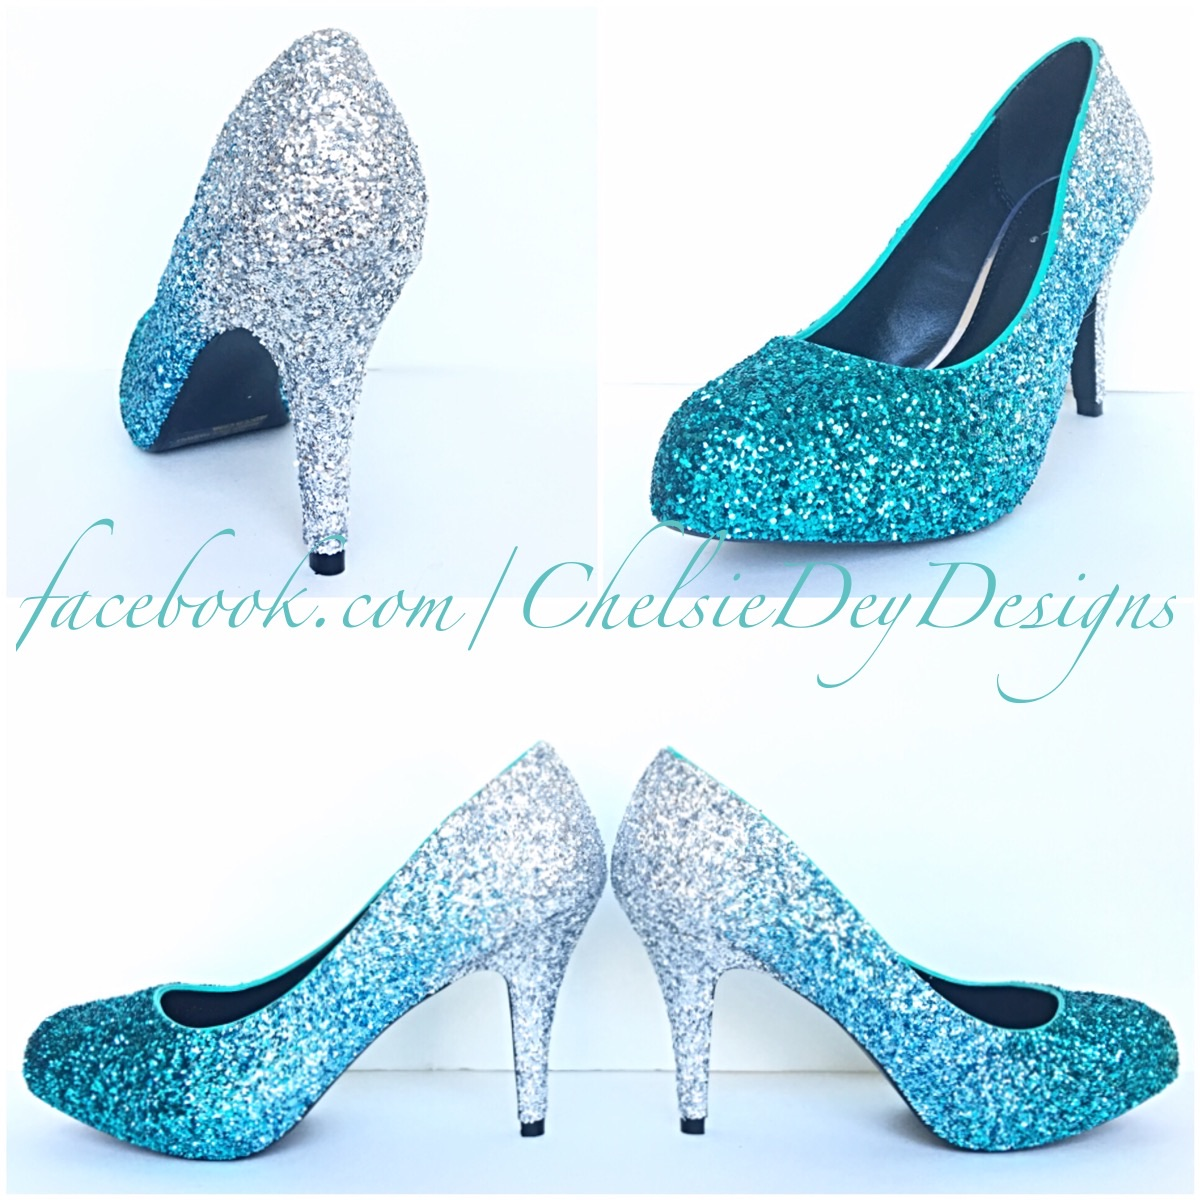 f2d92179782a5 Glitter High Heels - Blue and Silver Pumps -Aqua Turquoise Ombre Platform  Shoes - Fade Two Tone Heels - Sparkly Glitzy Wedding Heels